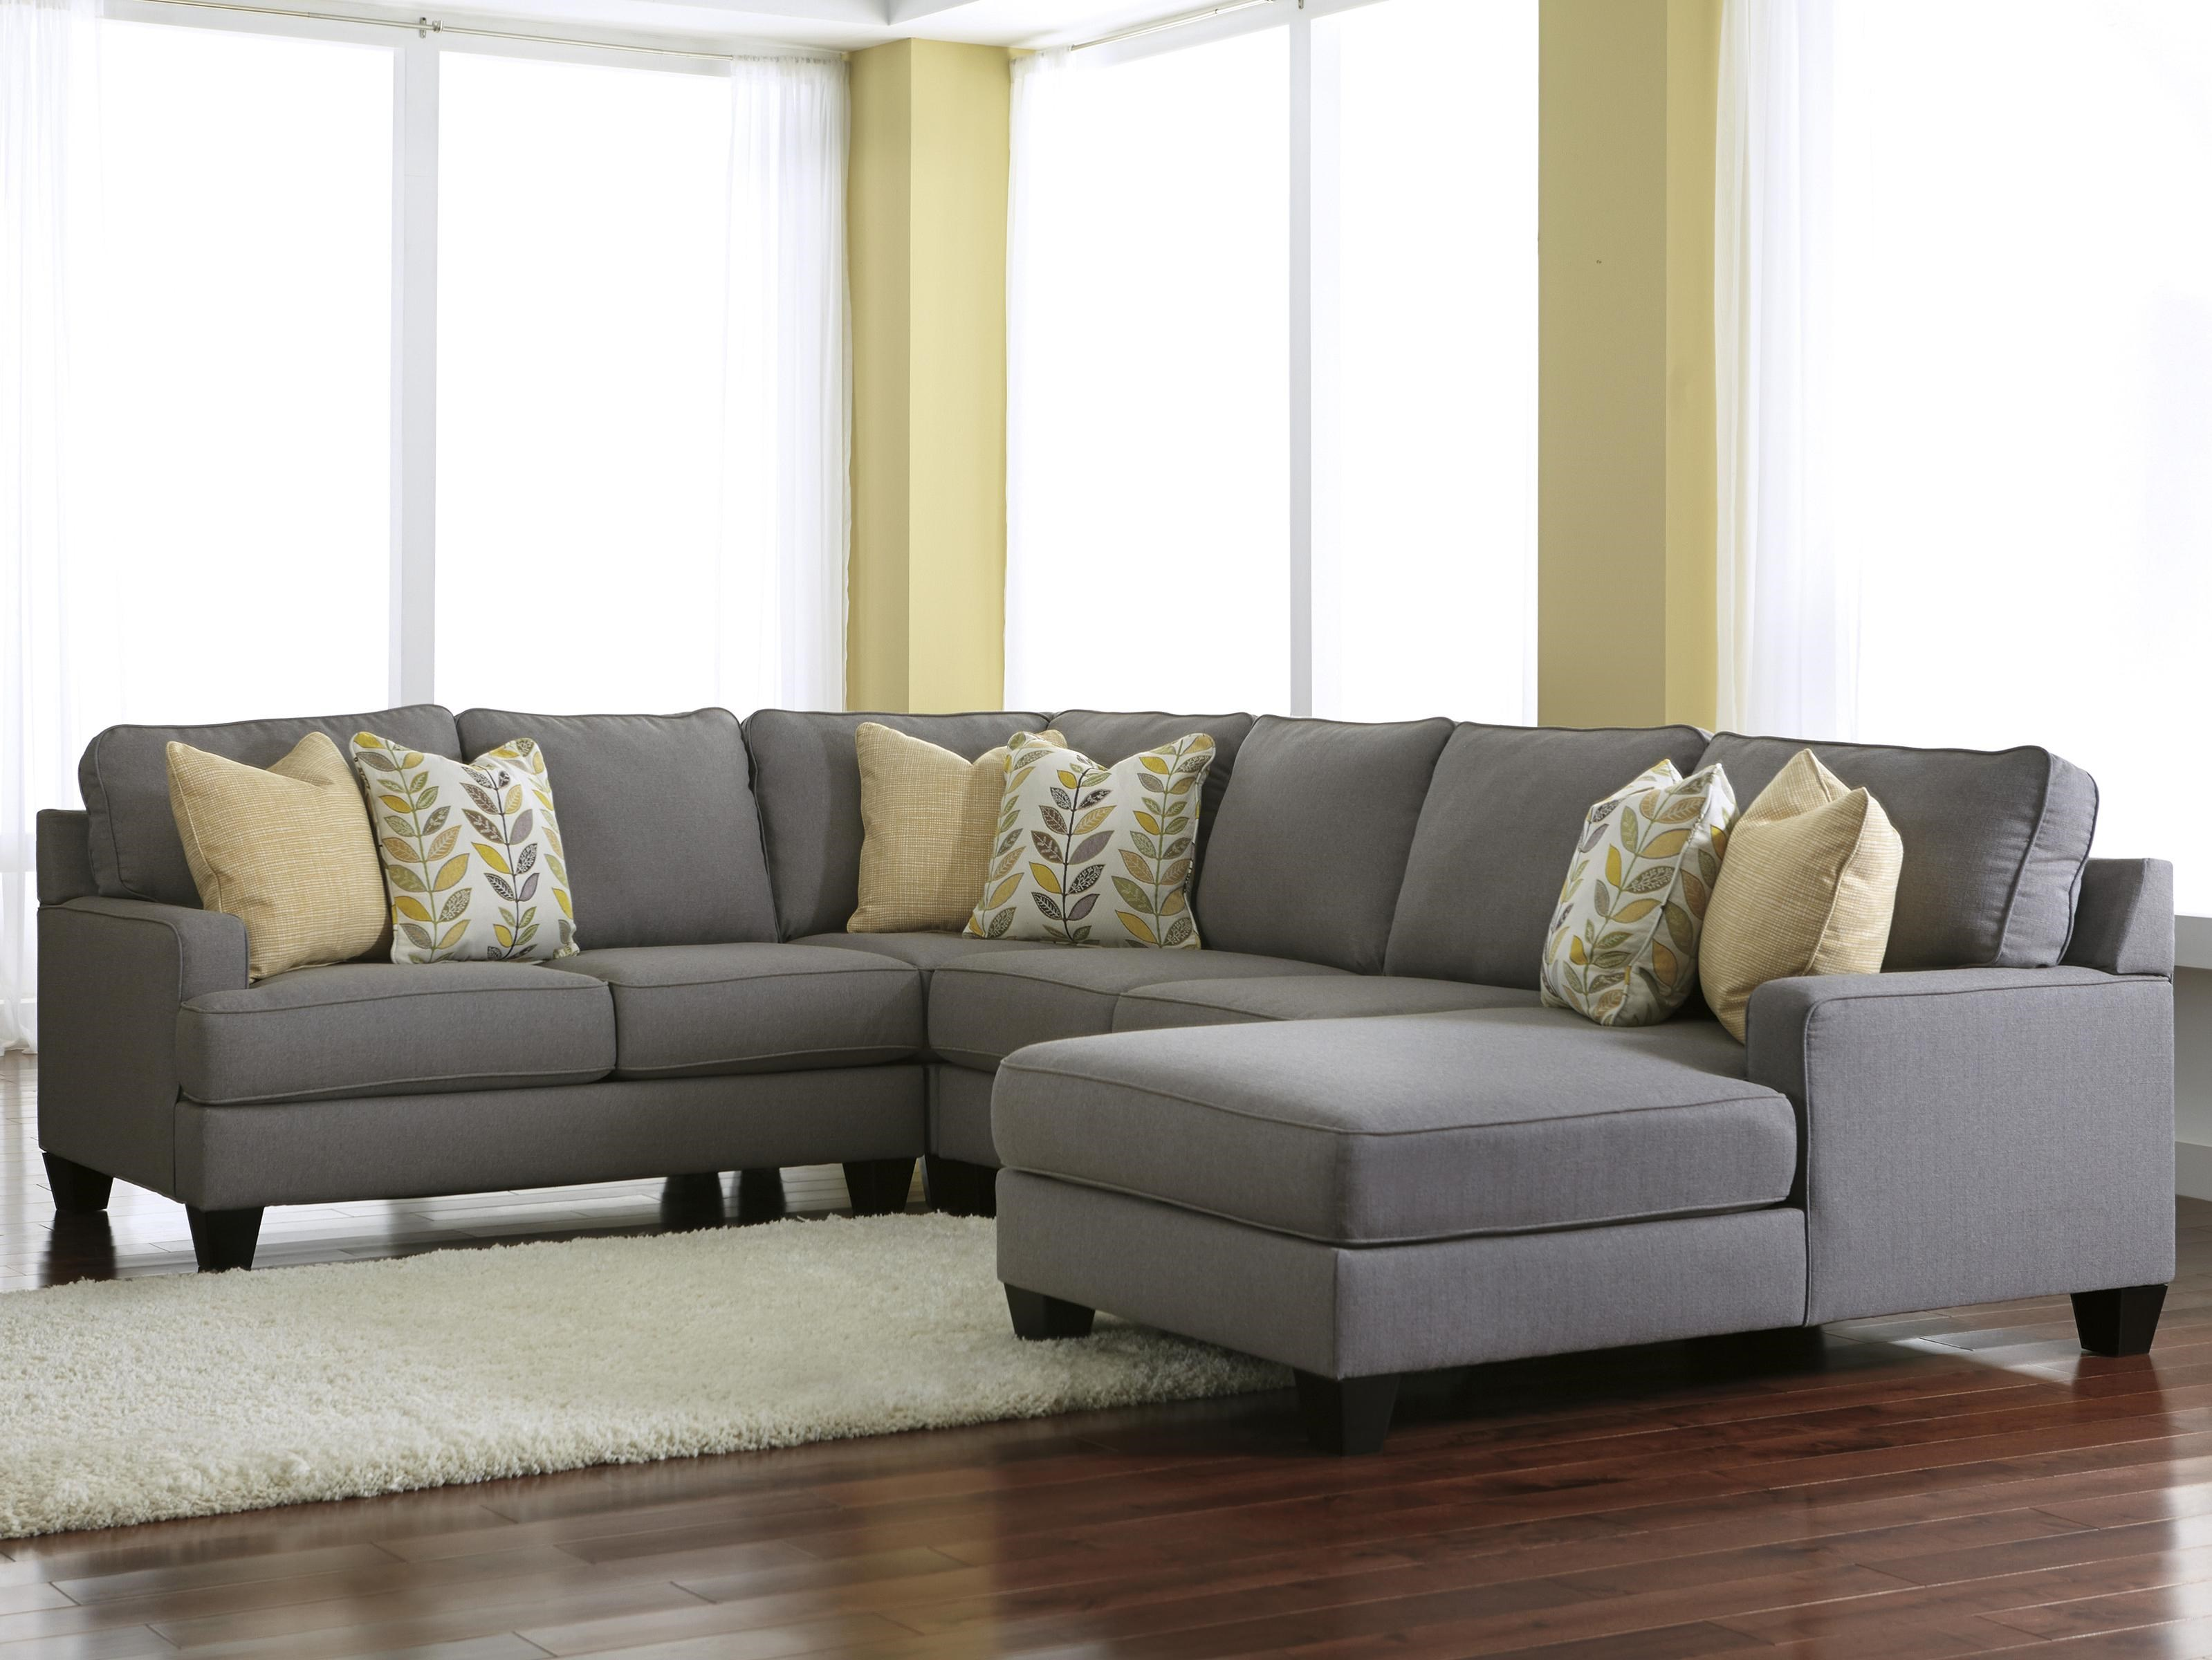 Signature Design By Ashley Chamberly   Alloy Modern 4 Piece Sectional Sofa  With Right Chaise